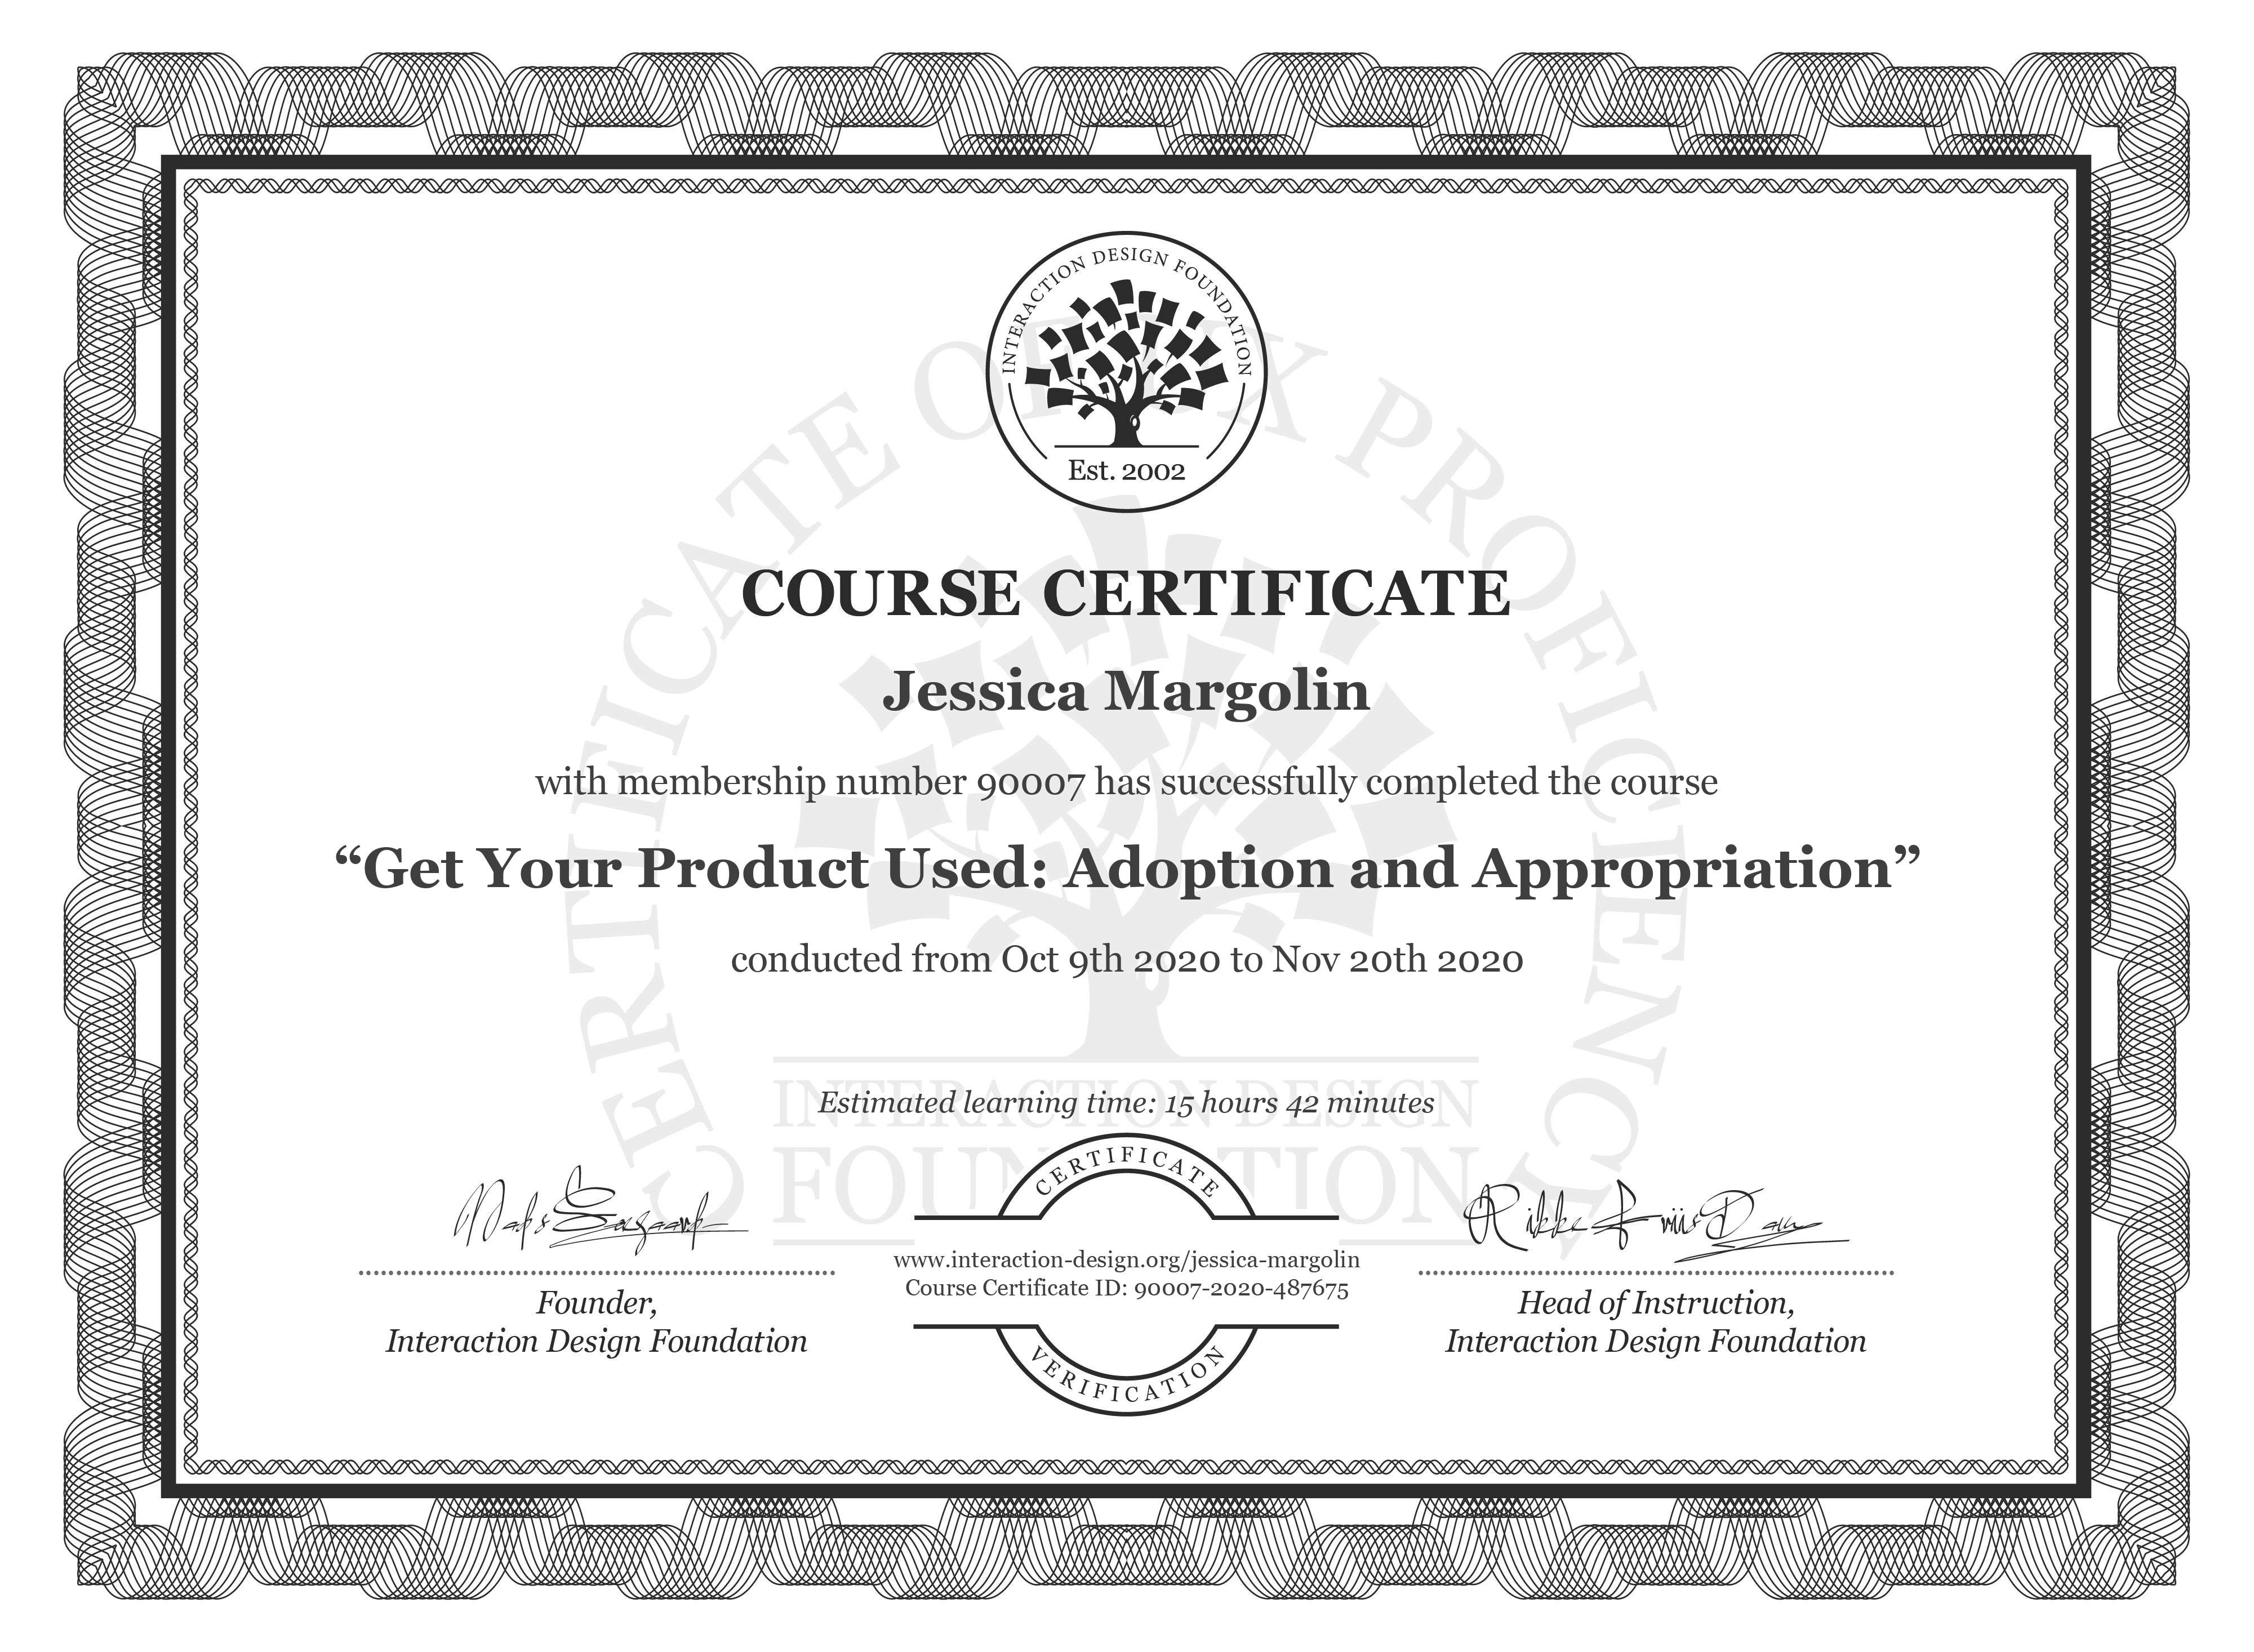 Jessica Margolin's Course Certificate: Get Your Product Used: Adoption and Appropriation